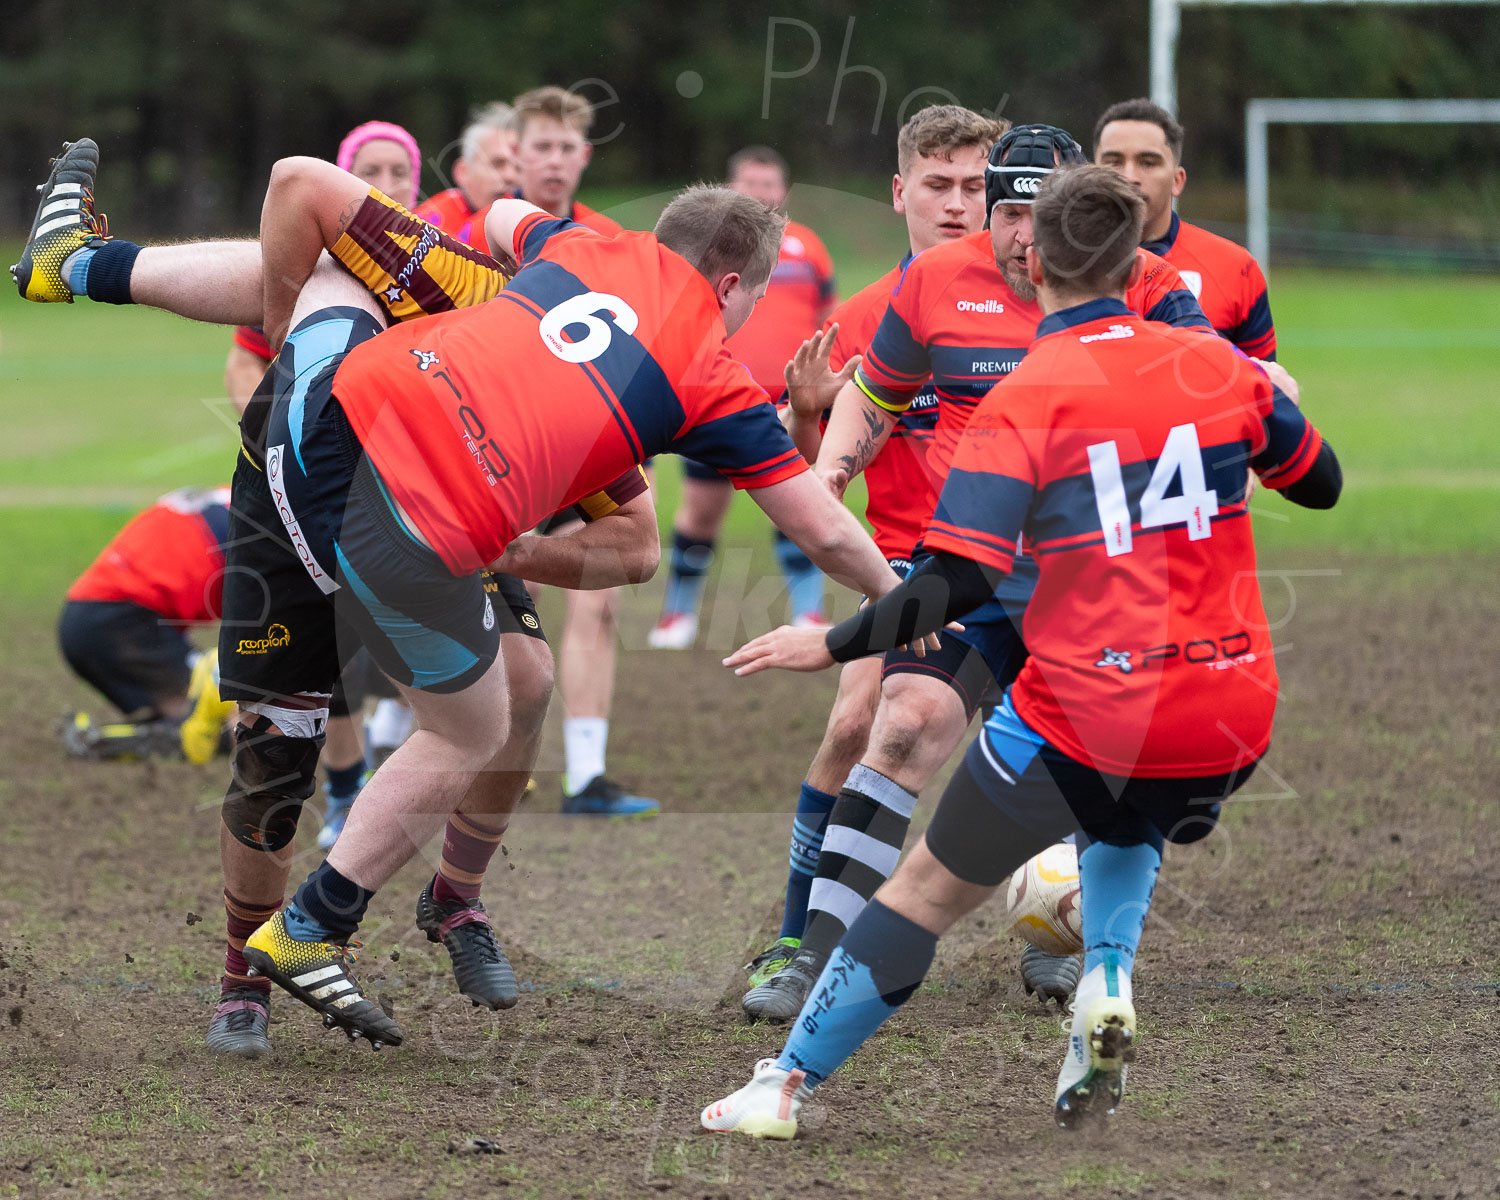 20181027 Amp Extras vs St Neots 2nd XV #2152